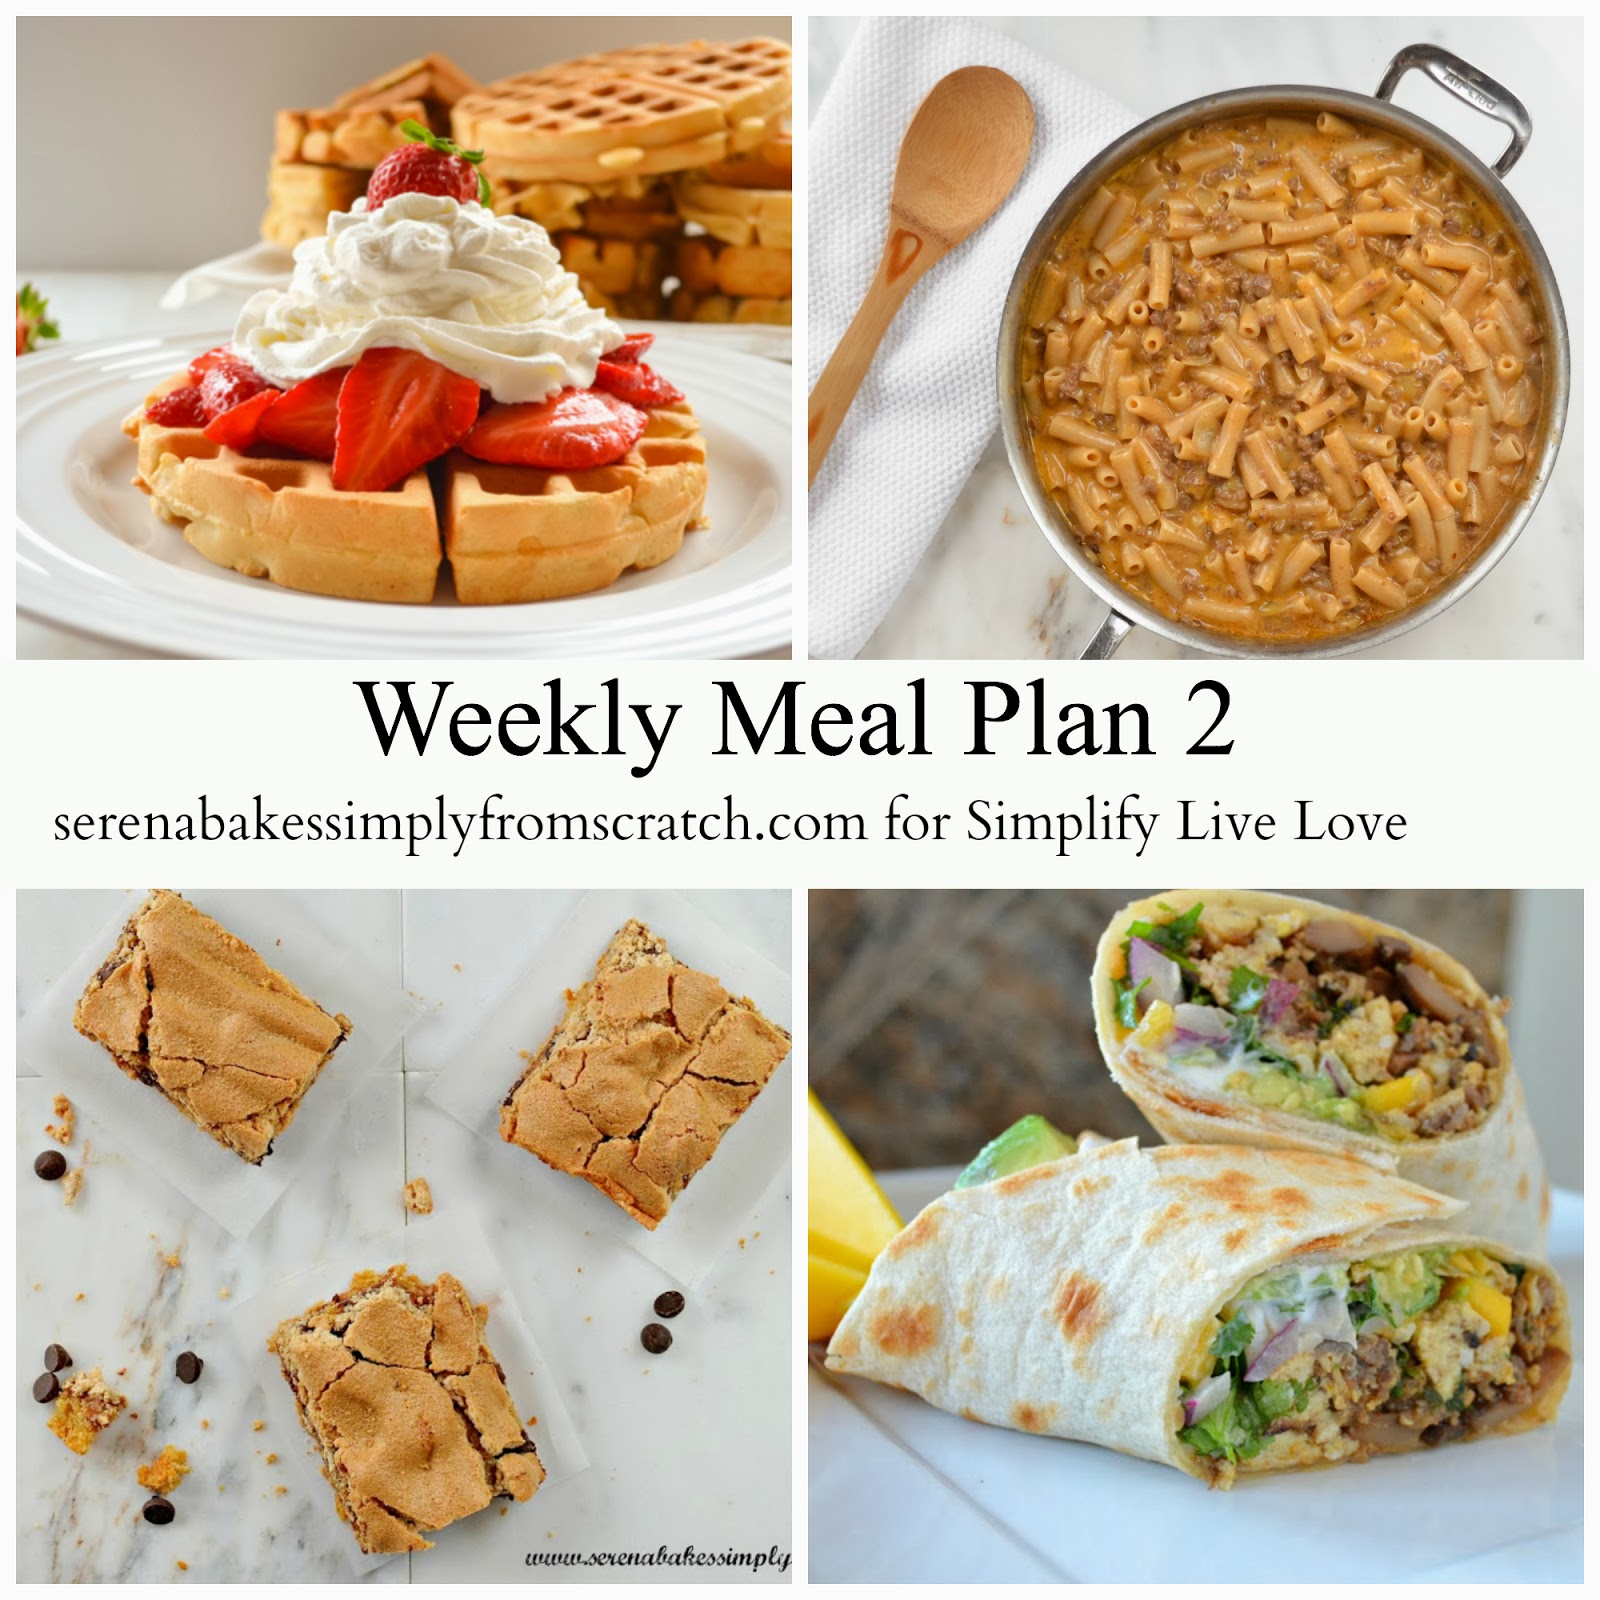 Weekly Meal Plan Week 2 | serenabakessimplyfromscratch.com for simplifylivelove.com